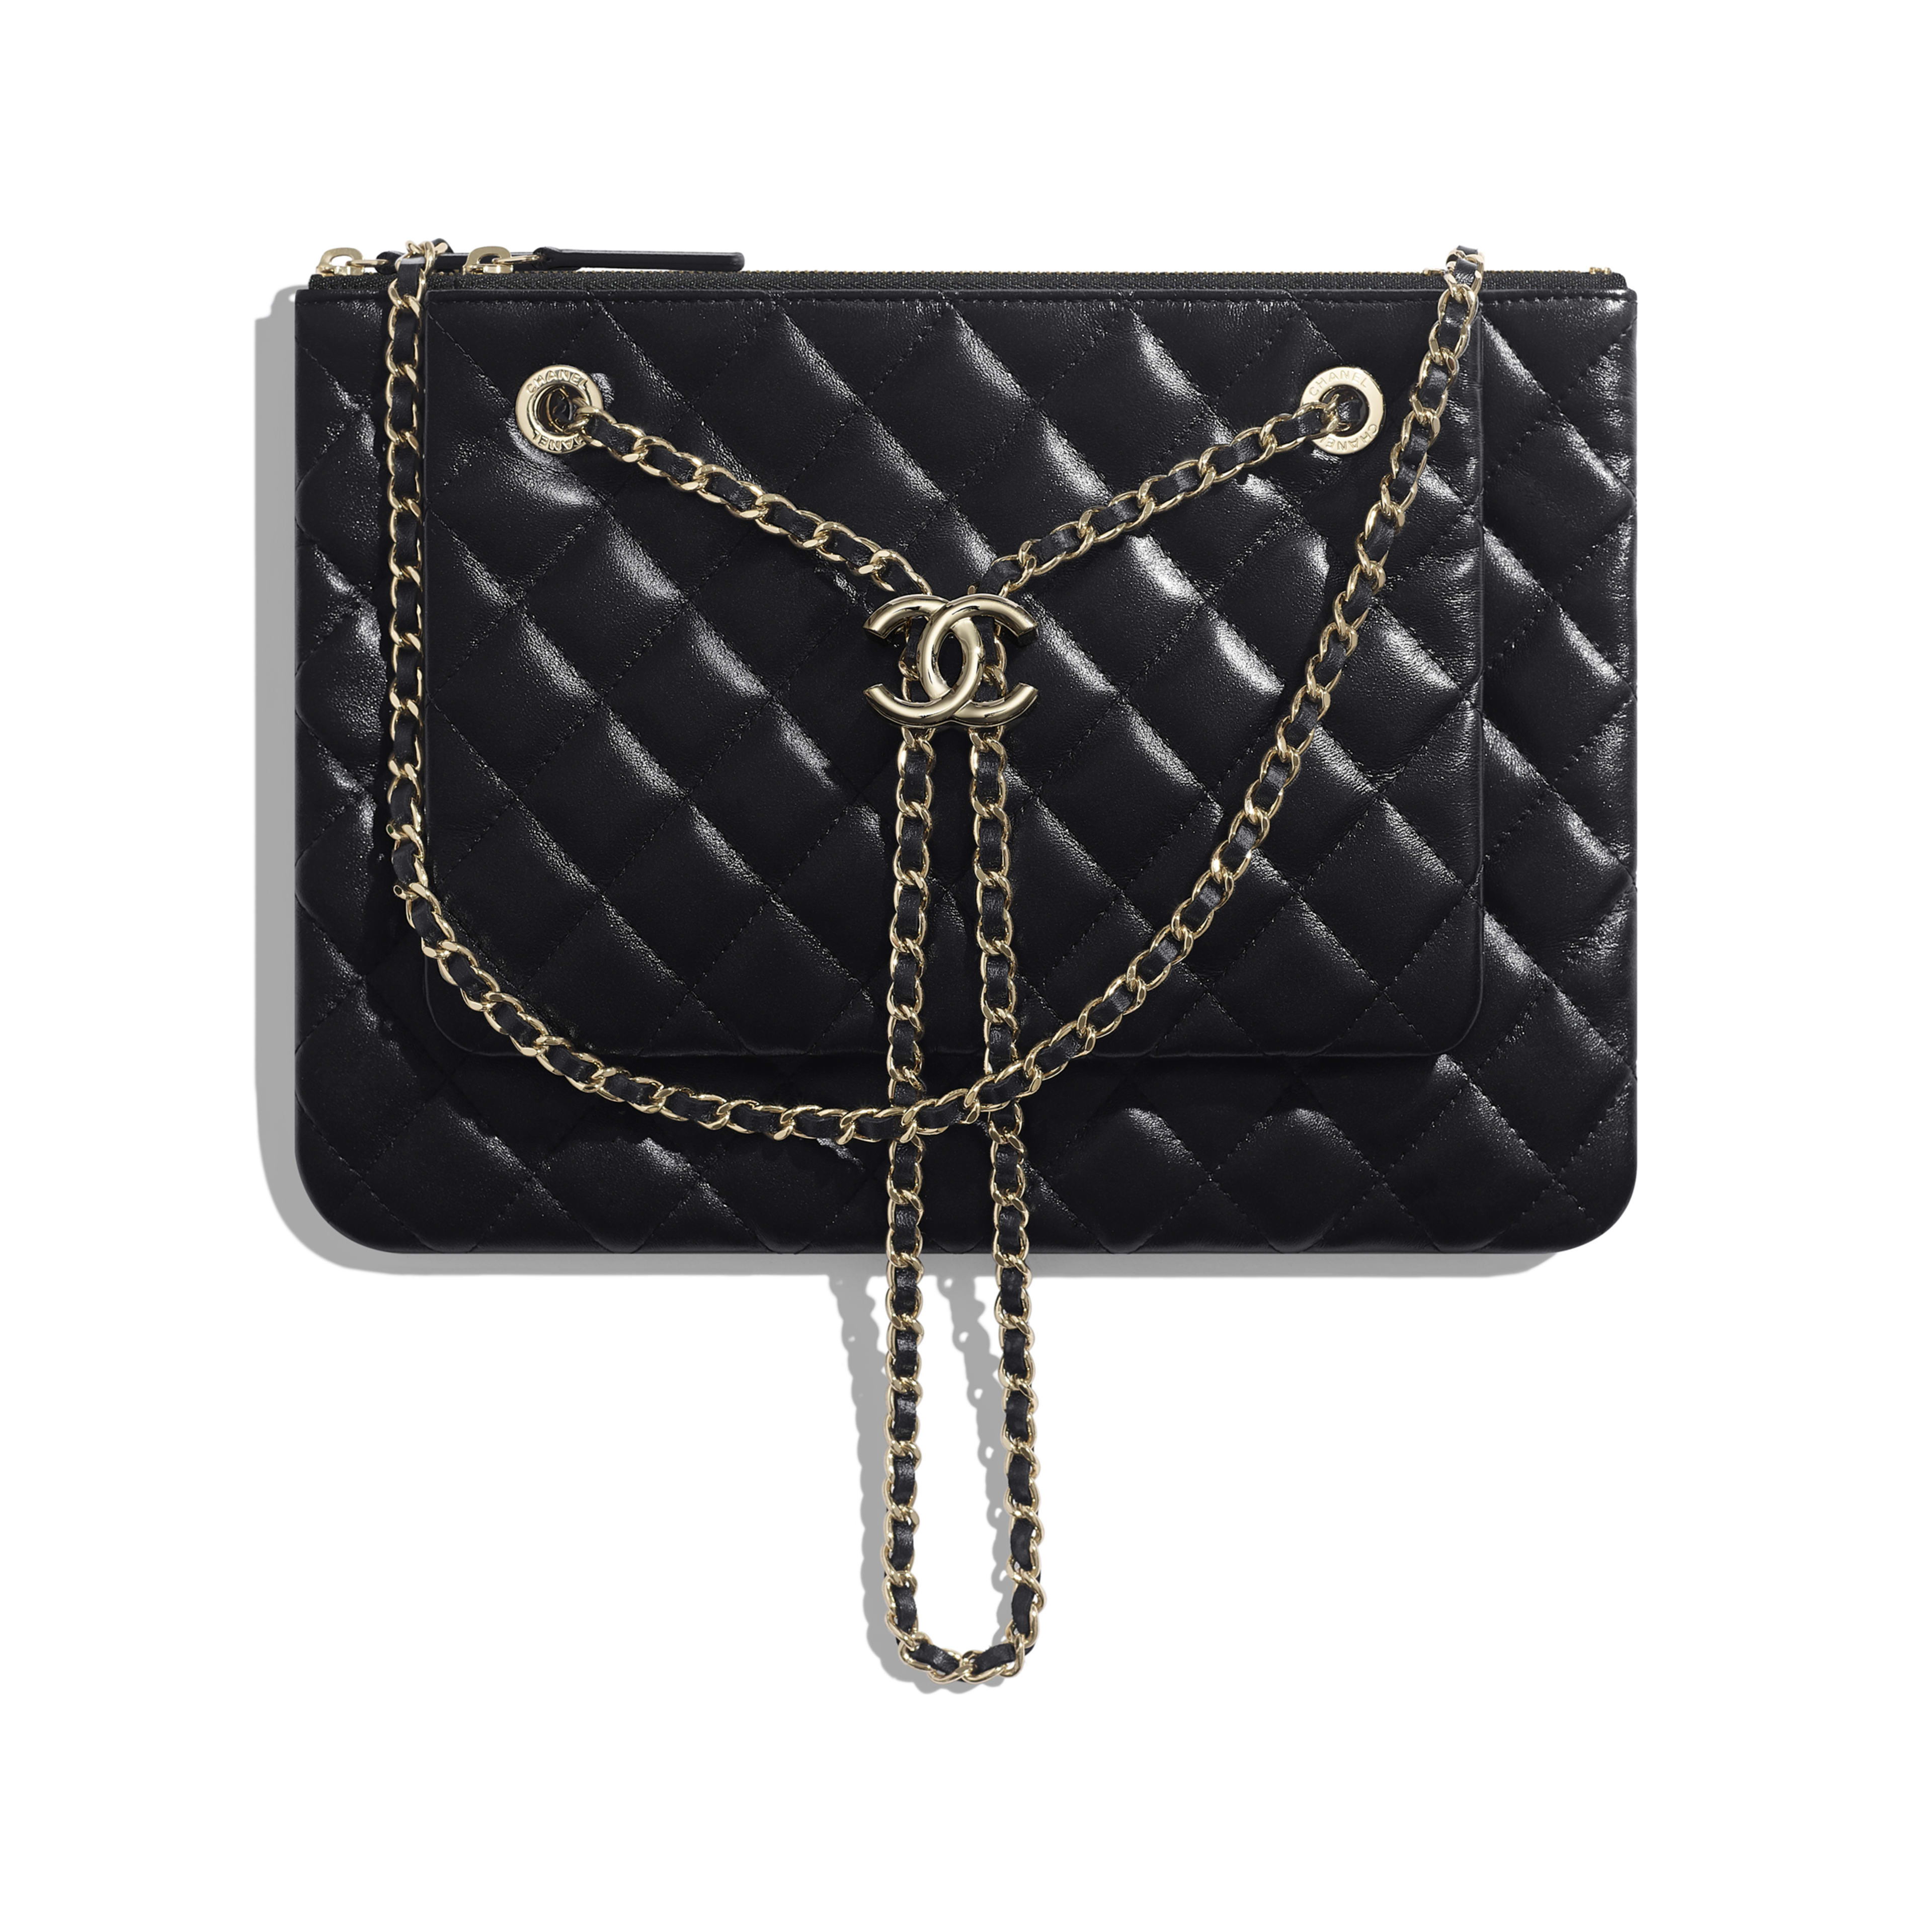 Clutch With Chain - Black - shiny lambskin & gold-tone metal - Default view - see full sized version